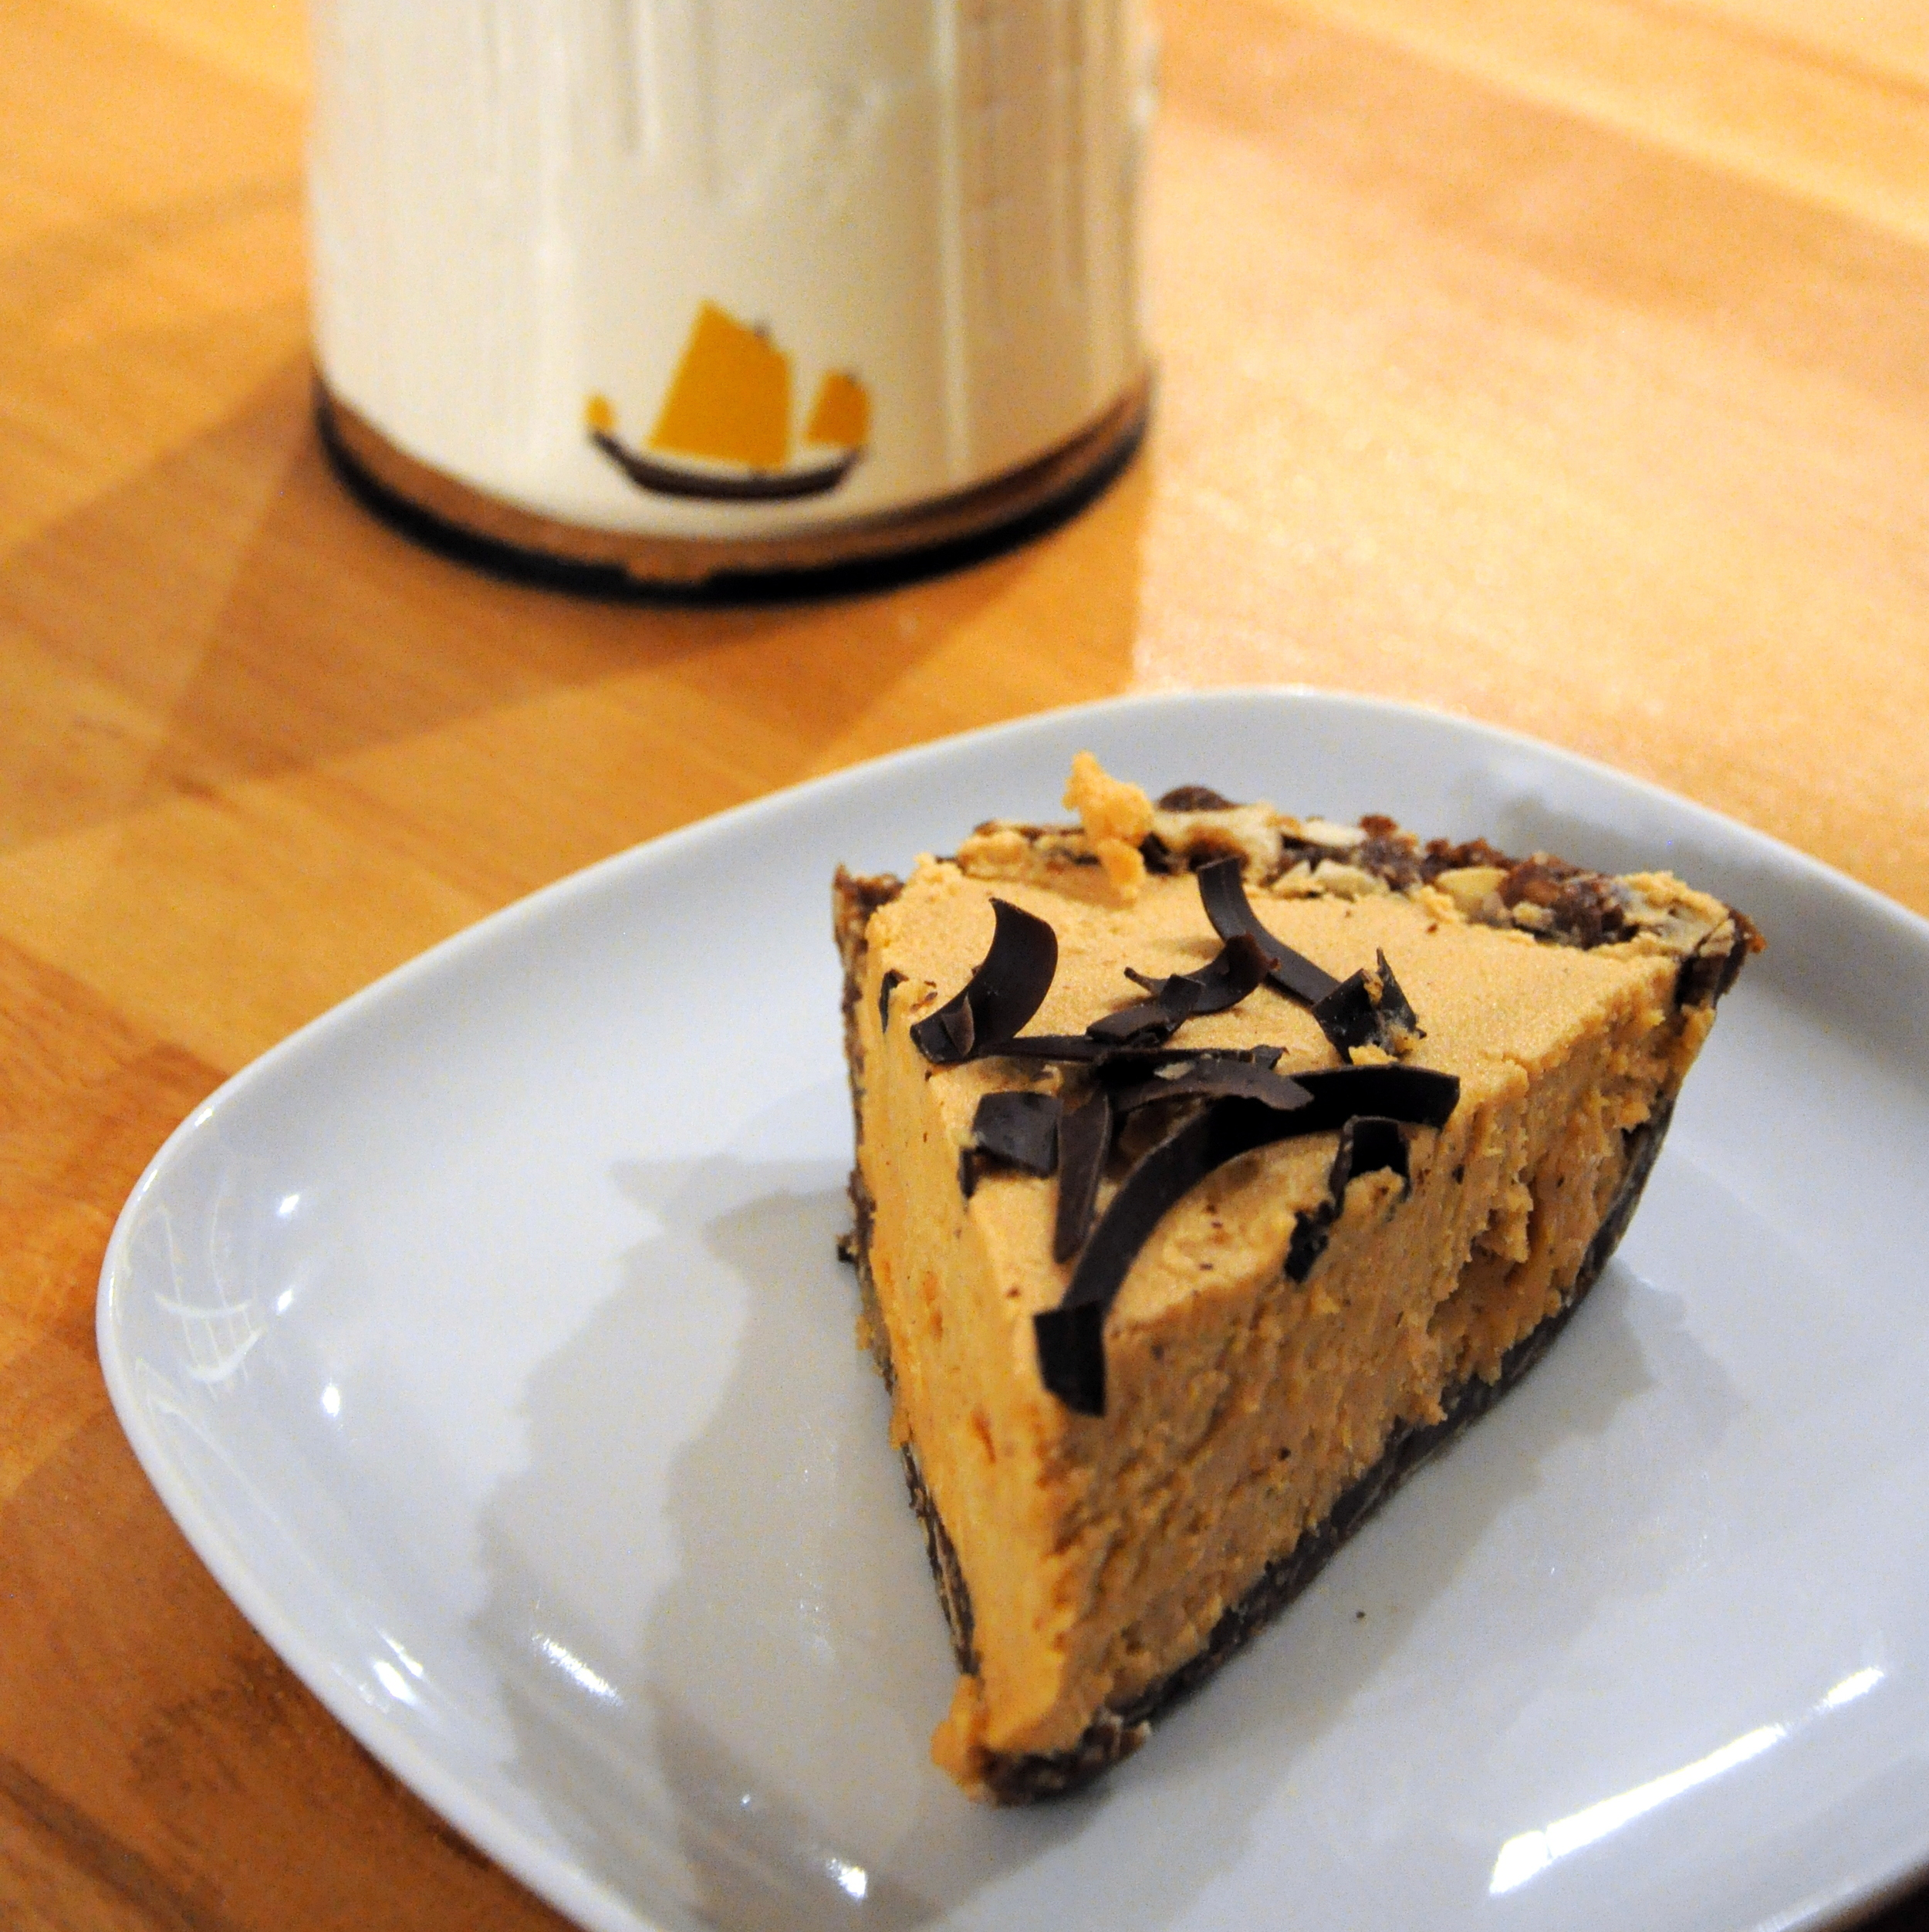 Peanut butter chocolate pie at Betty Bakery